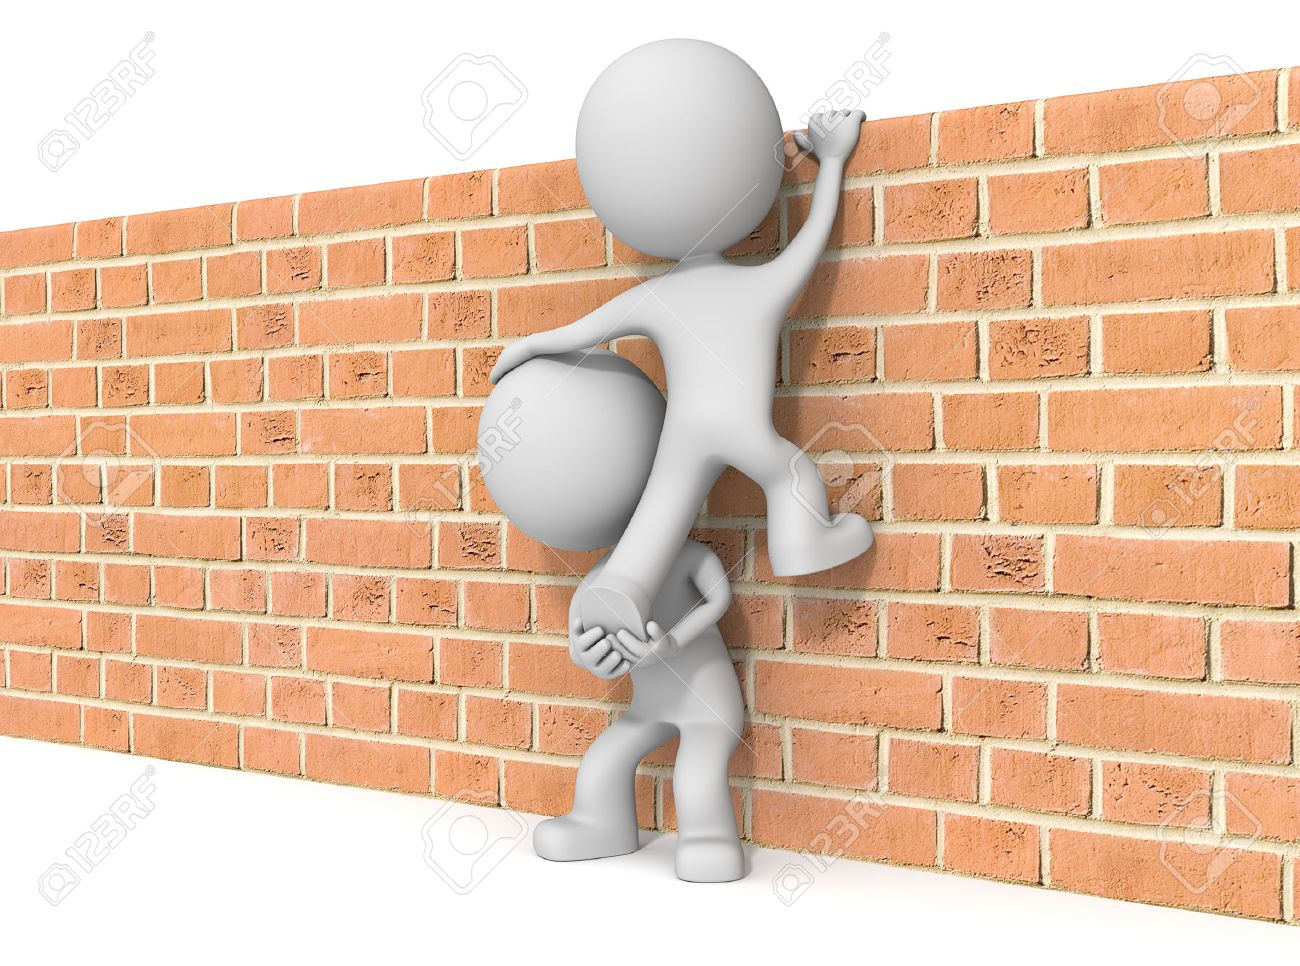 Over the wall. The dude 3D character x2 climbing Brick wall. - 35600889